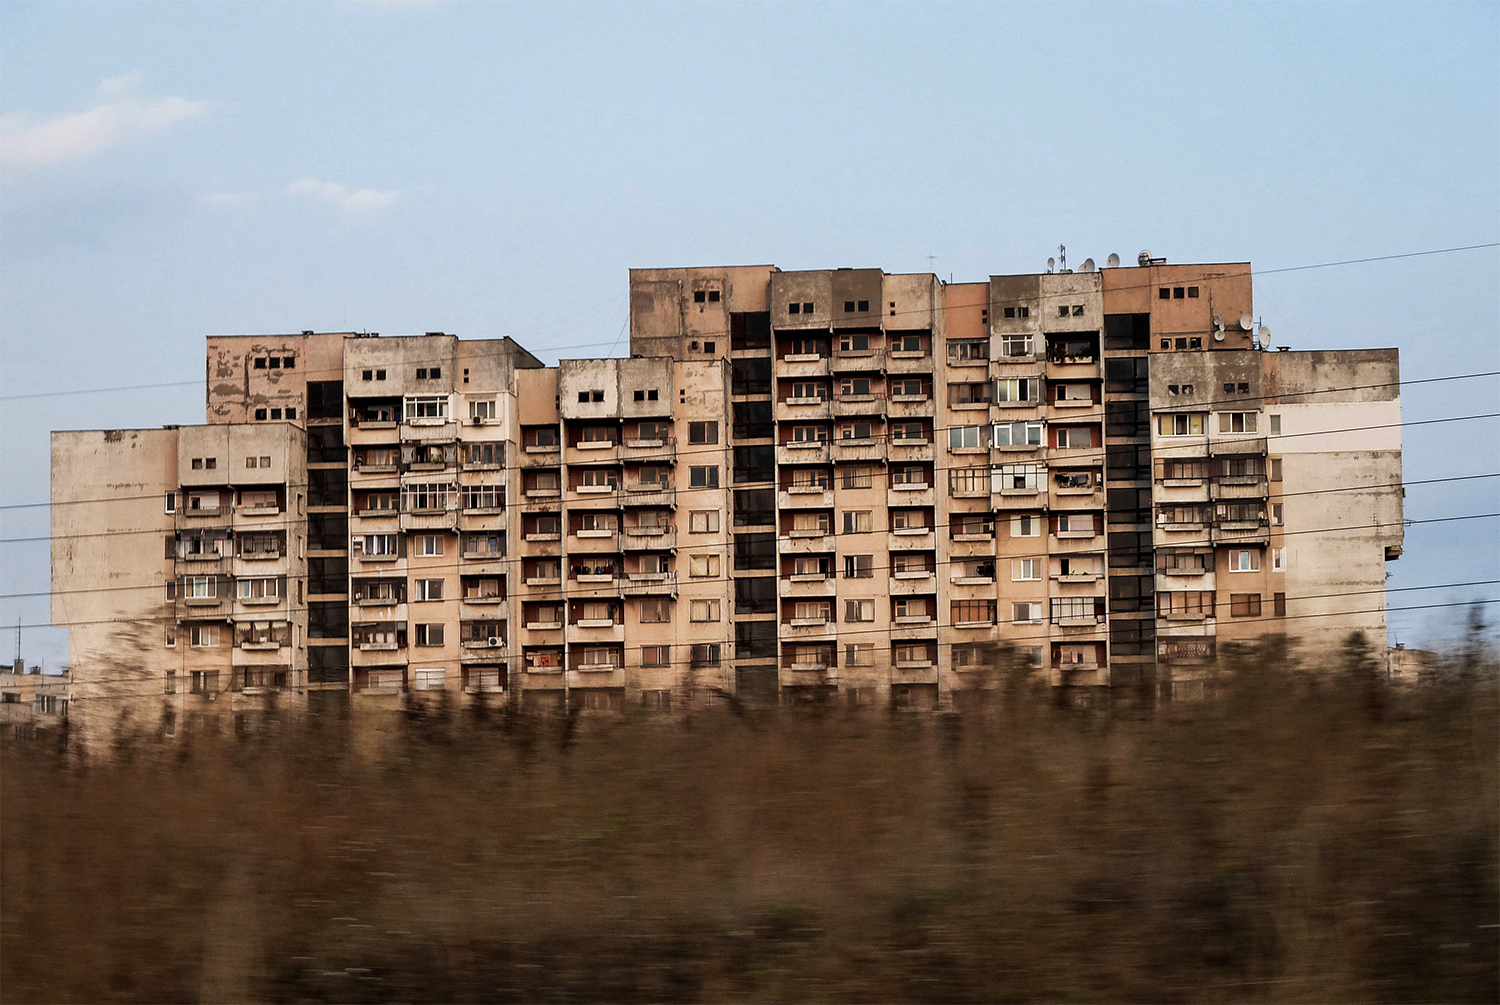 <p>The transition from farm fields to high-rise blocks is sudden on some approaches to Sofia.</p>